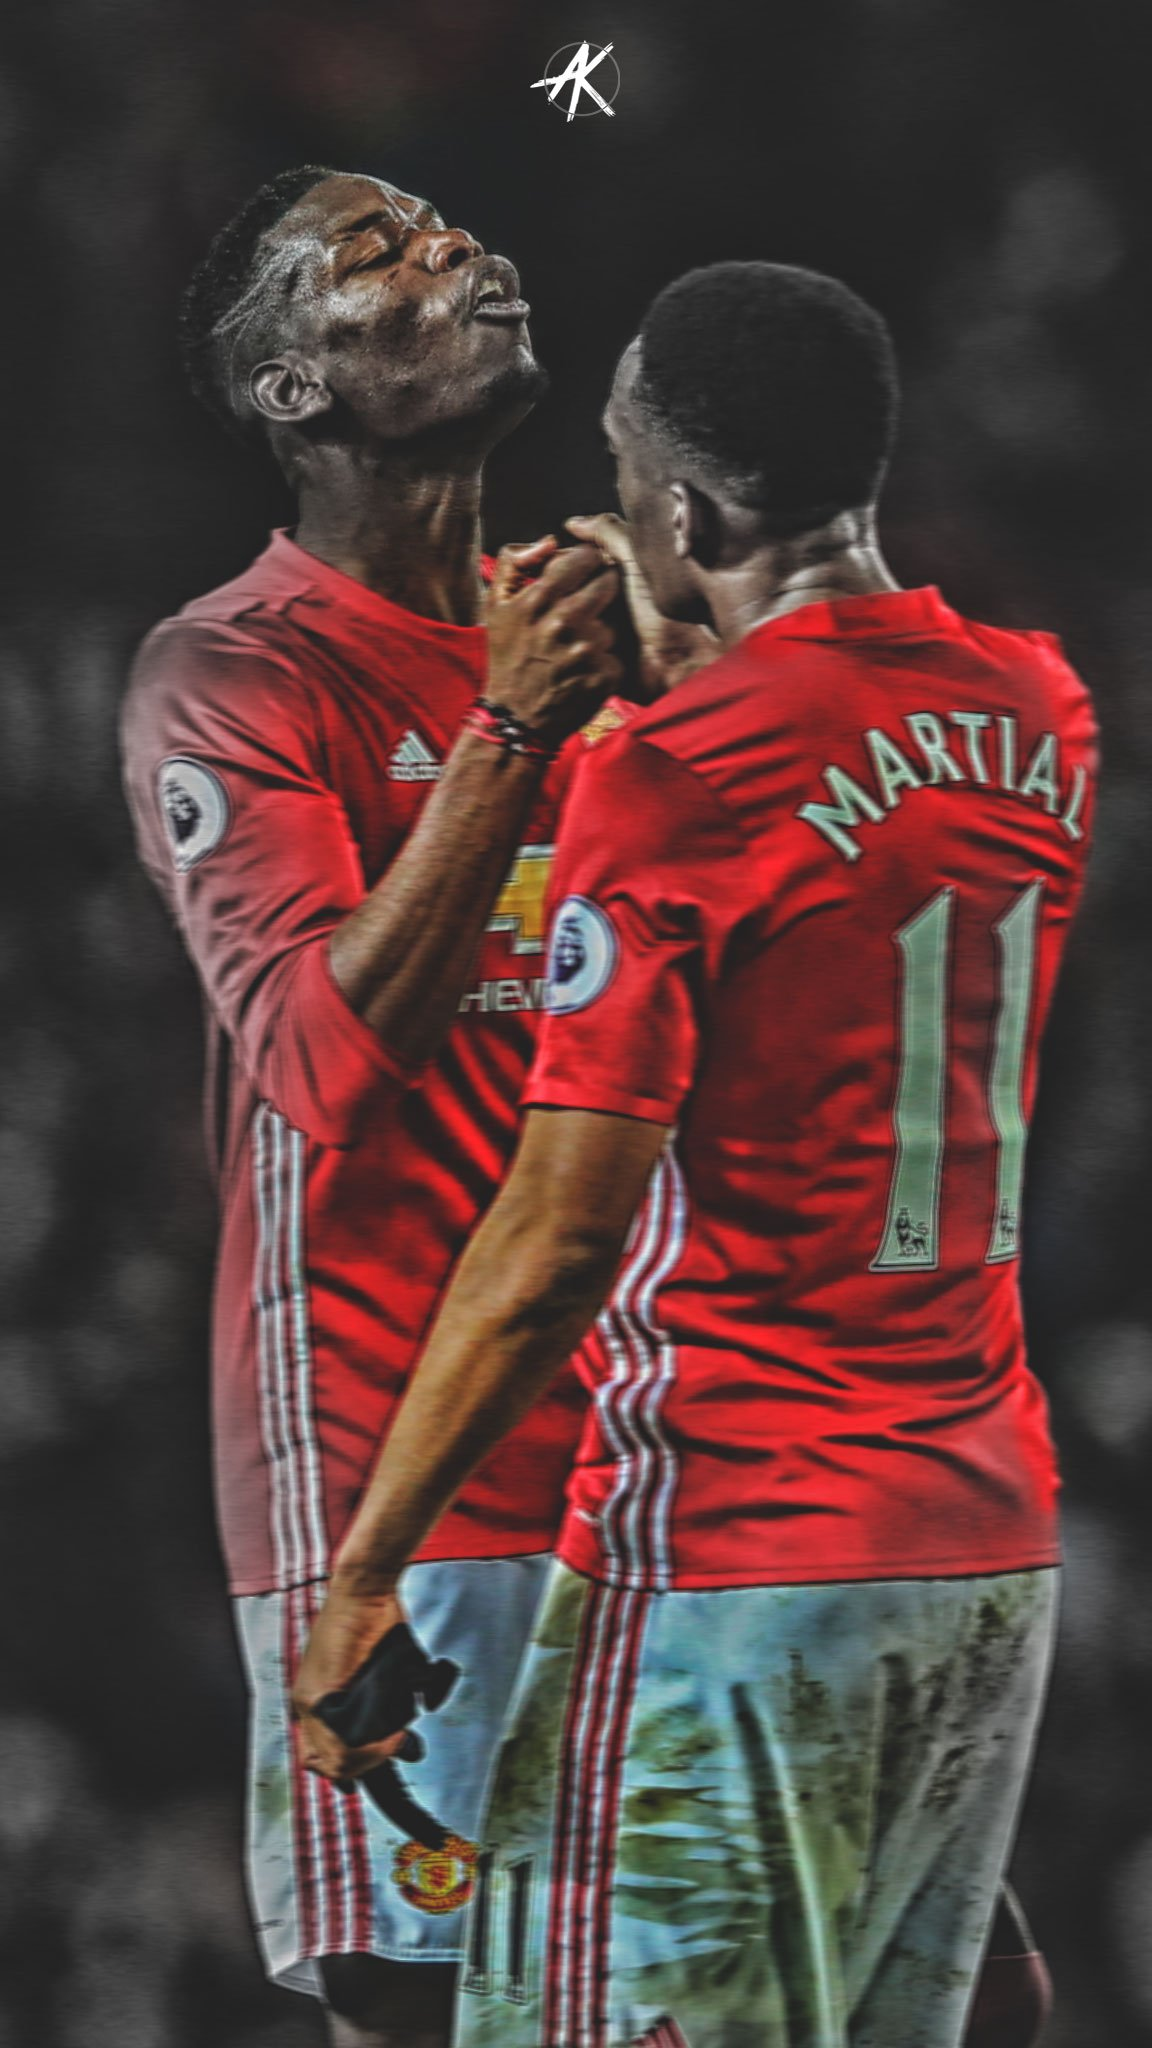 Mufc Iphone Wallpaper Ak Gfx On Twitter Quot Paul Pogba Amp Anthony Martial Iphone